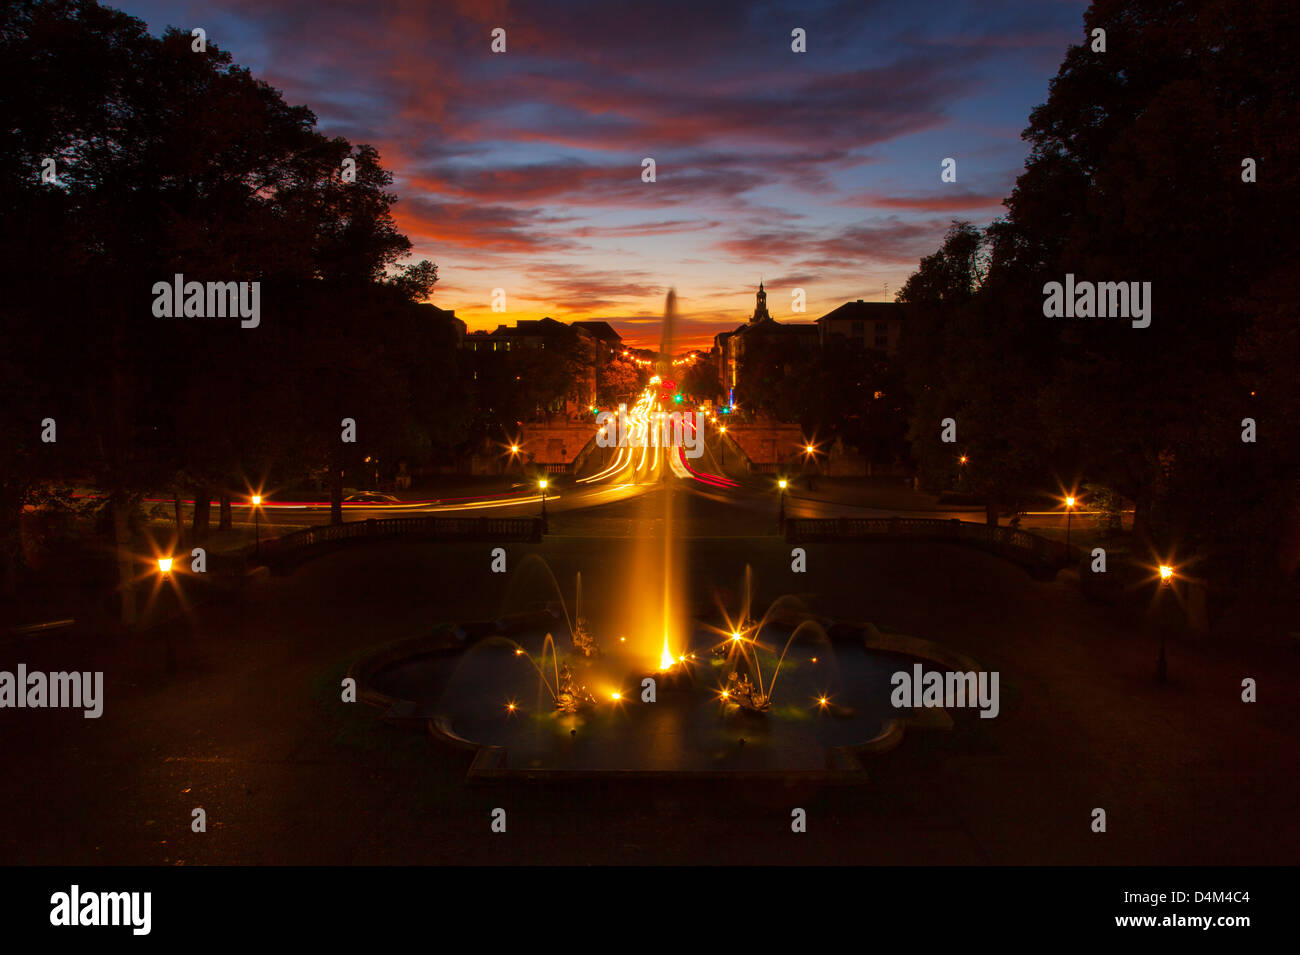 Ornate fountain with traffic at night - Stock Image